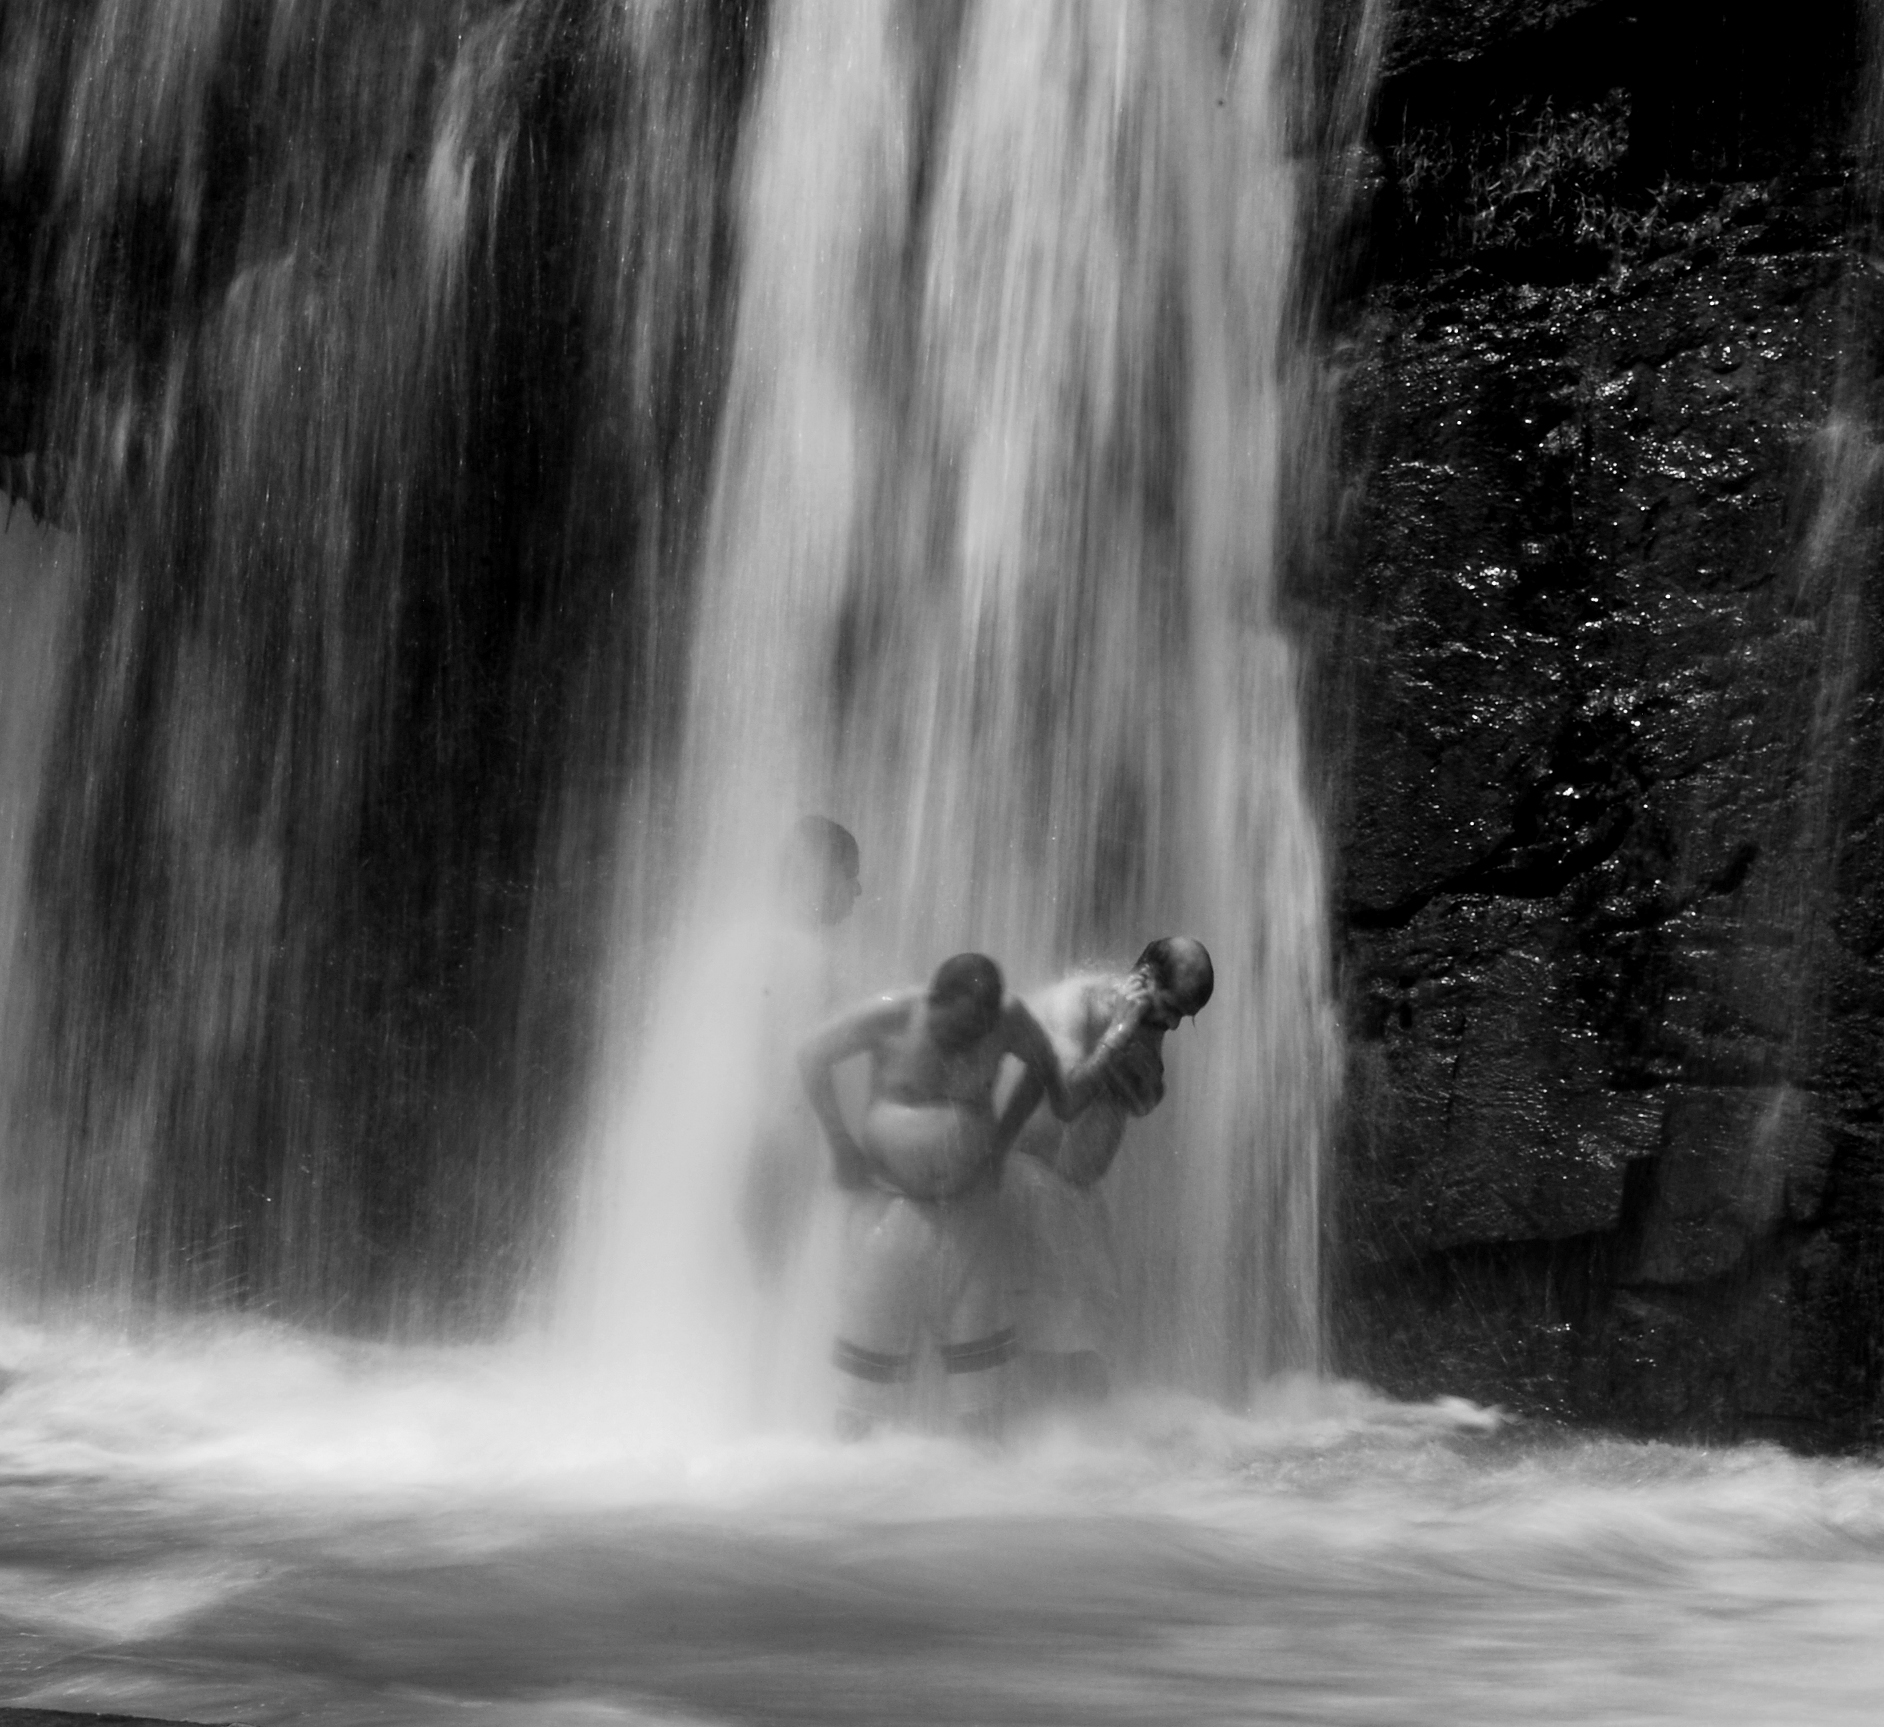 During hot summer days people of Tamil Nadu take bathing at natural waterfalls, which looks very pleasant and candid.